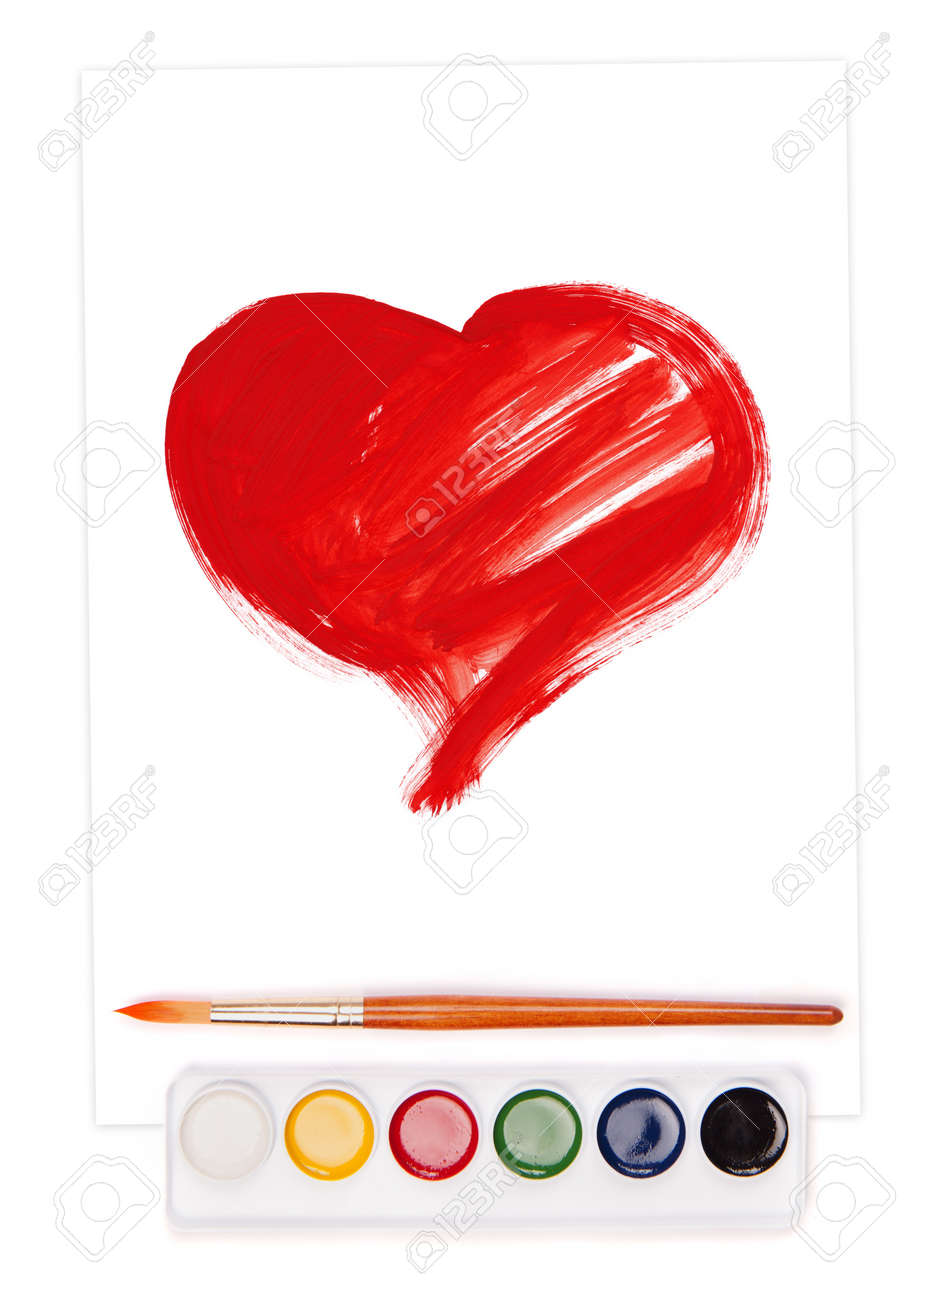 painted heart on sheet, watercolor set and brush Stock Photo - 17014485